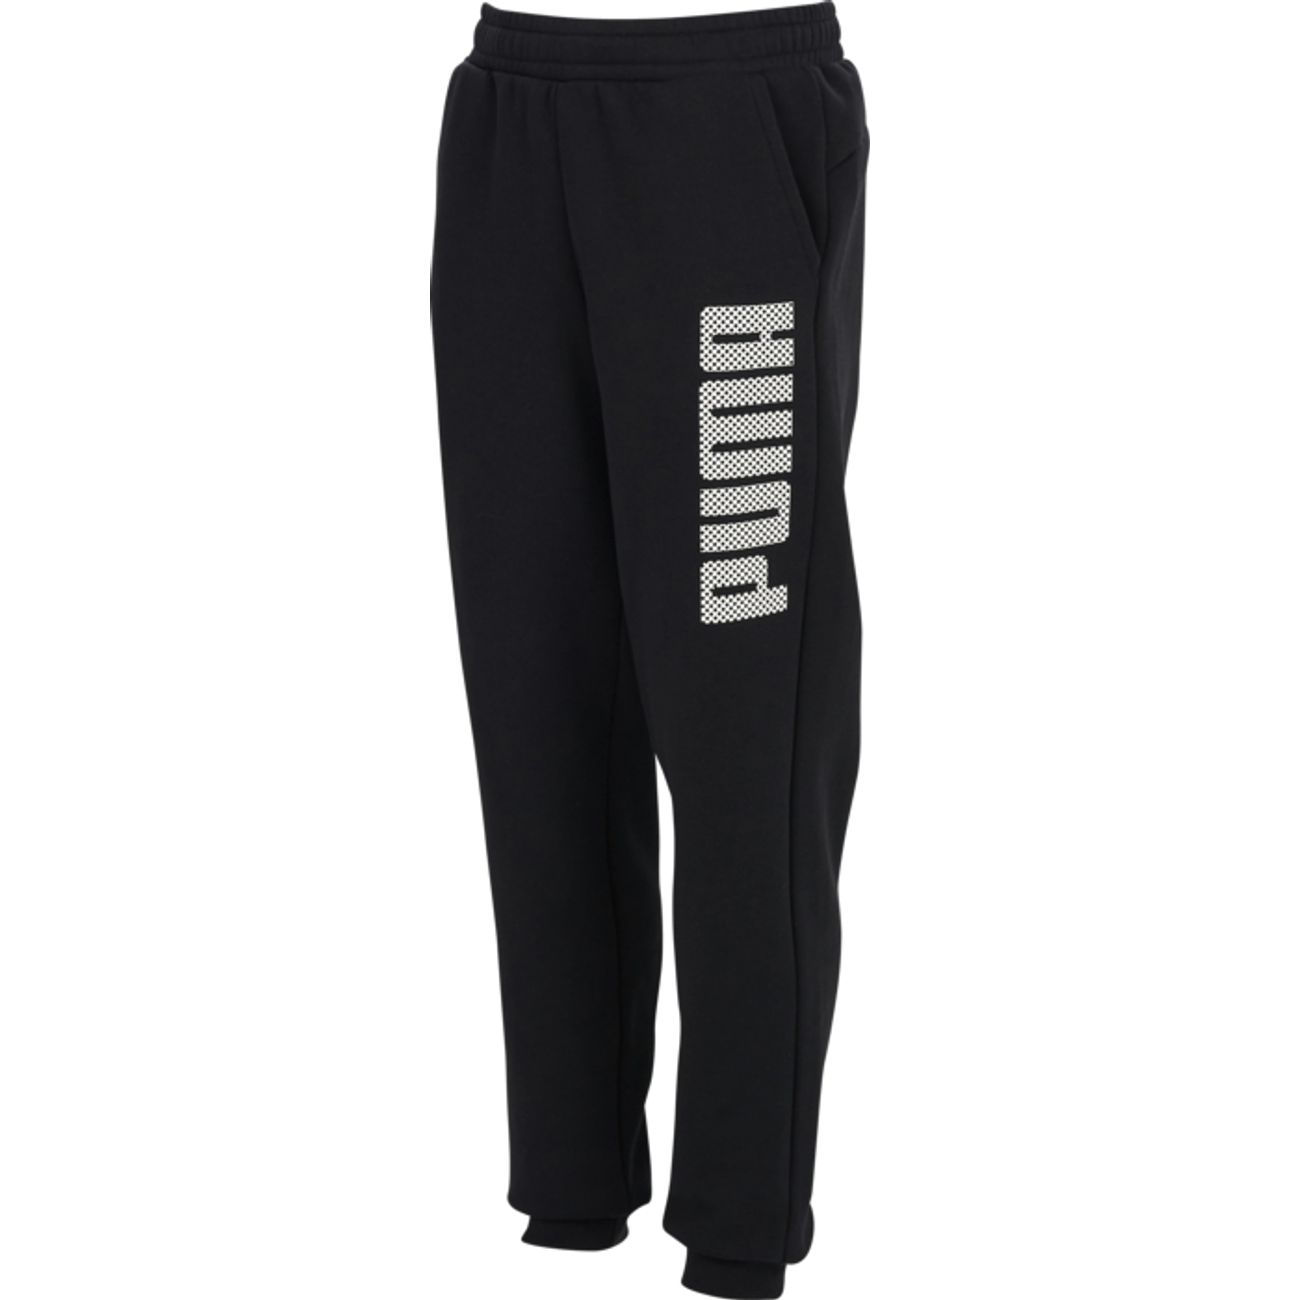 PANTALON GARCON Multisport garçon PUMA KA BOY GRAPHIC SWT PANTS